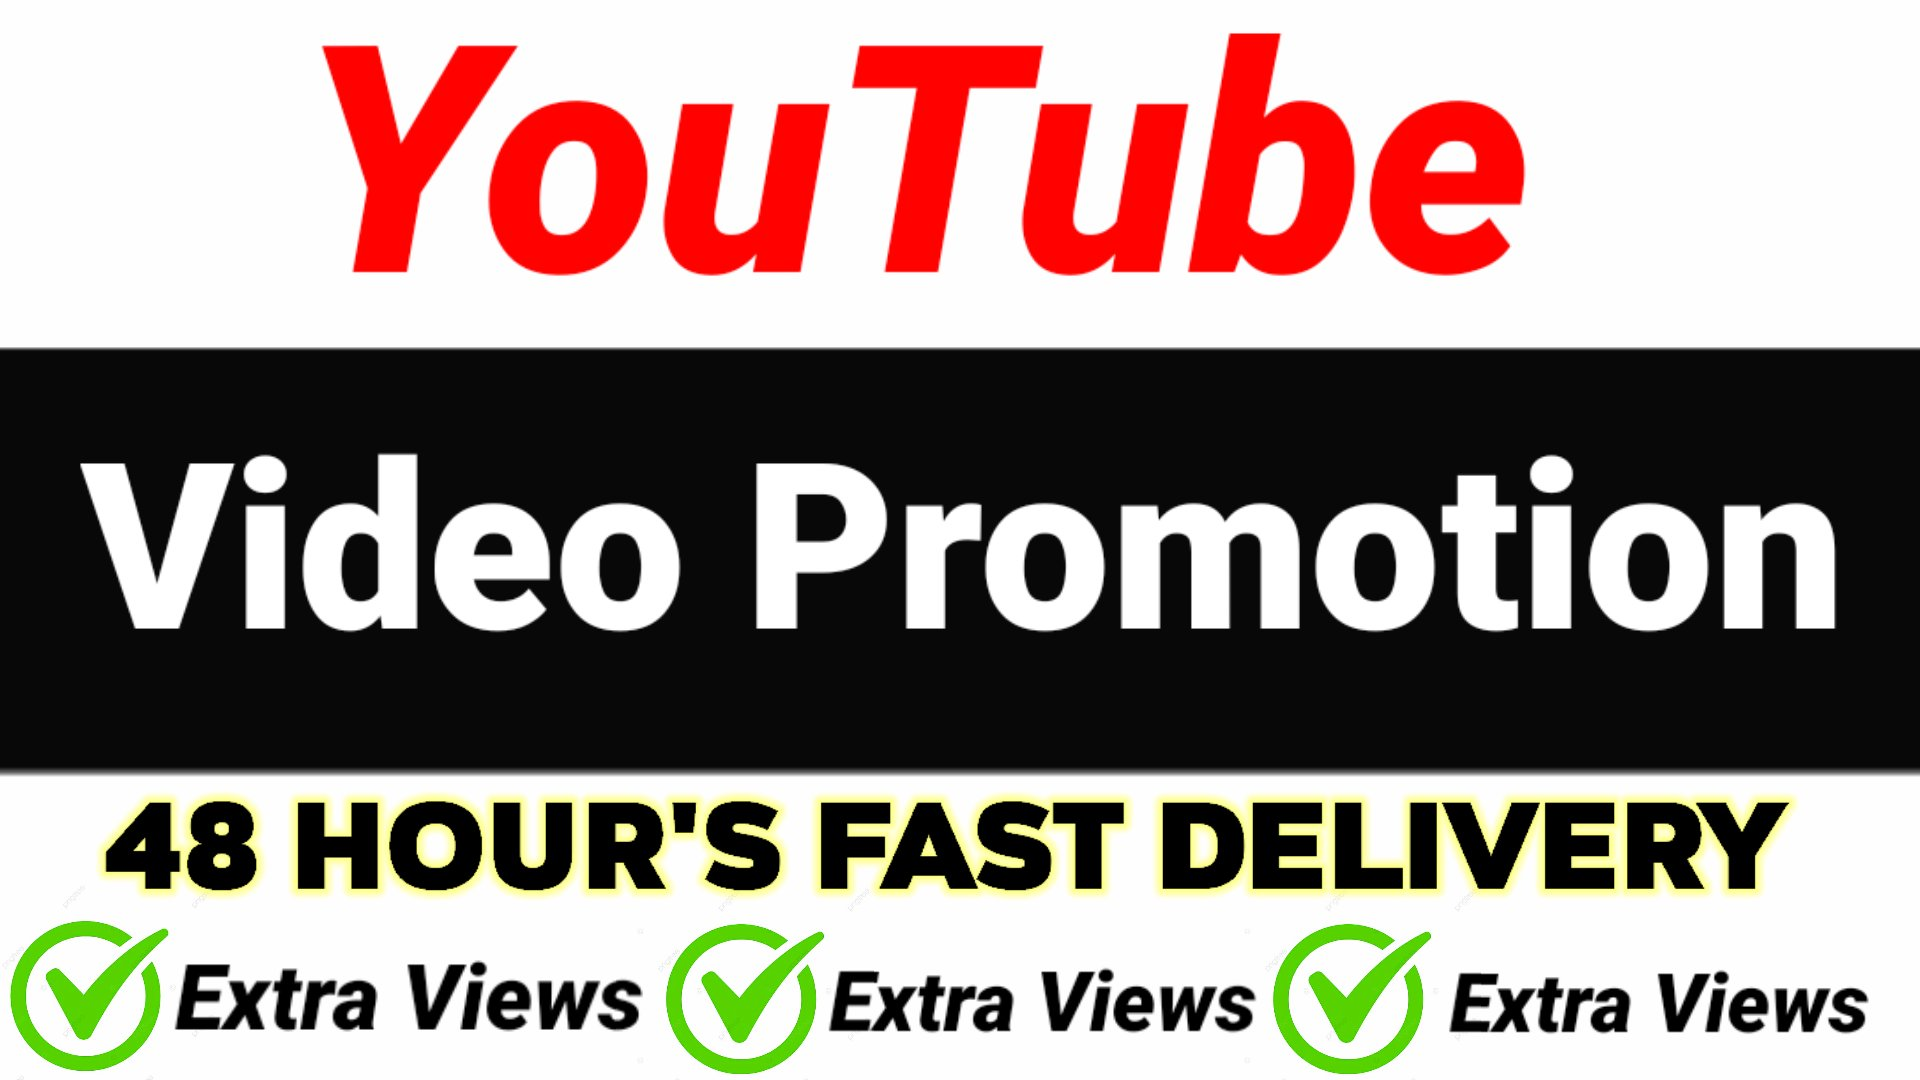 YouTube video Promotion and Marketing & Social media 48 hours delivery